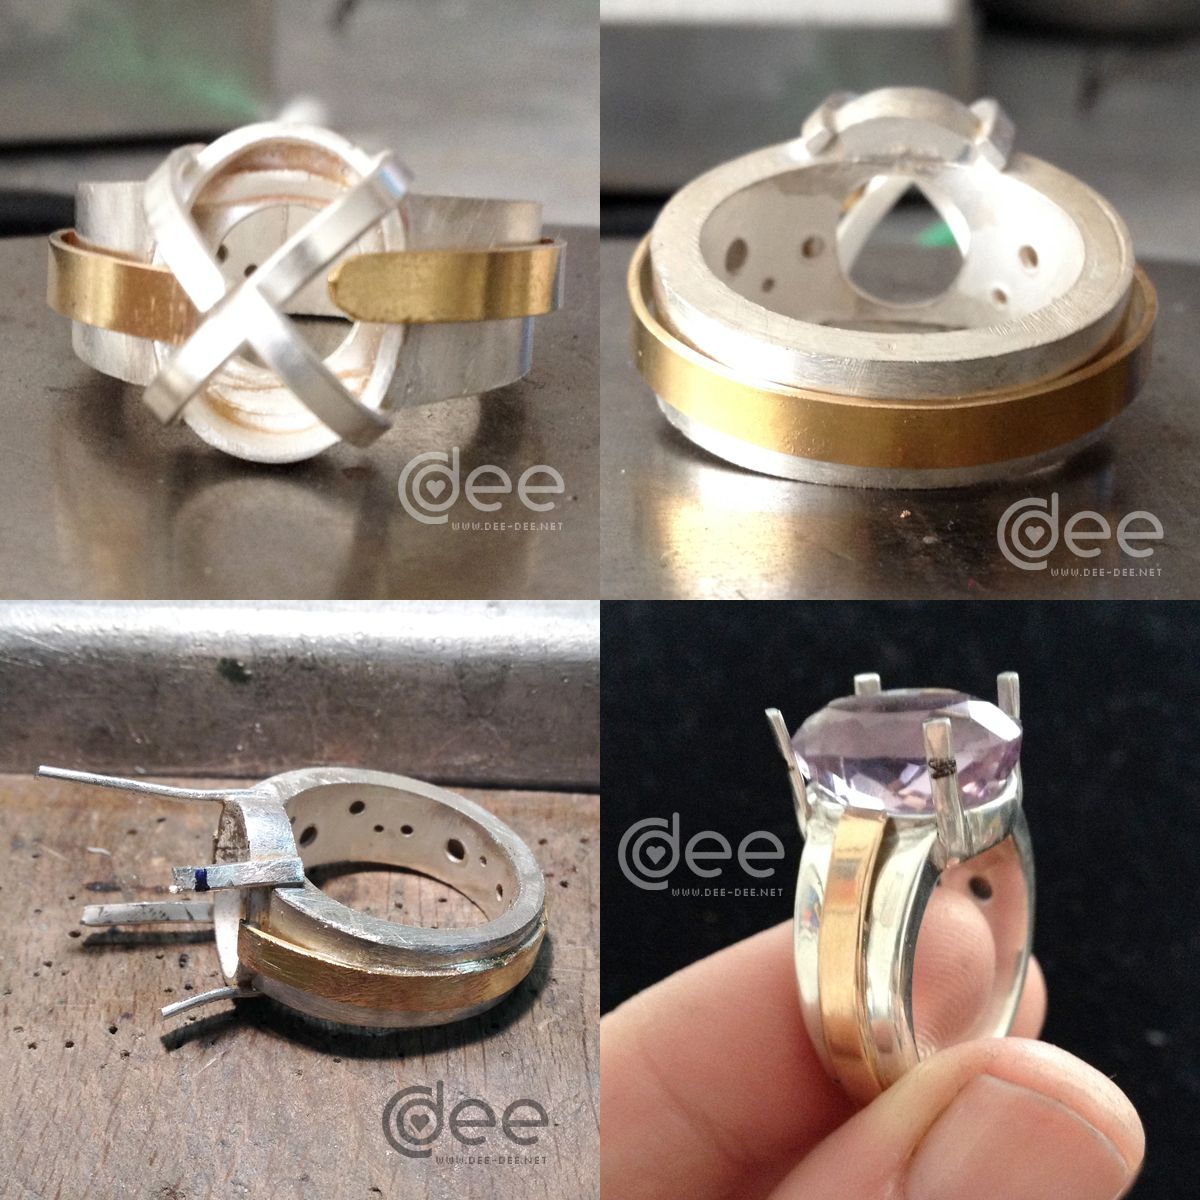 As My First Piece For The Jewellery Professional Course I Made A Hollow Ring Main Difference To Previous Is That This One Has An Inner